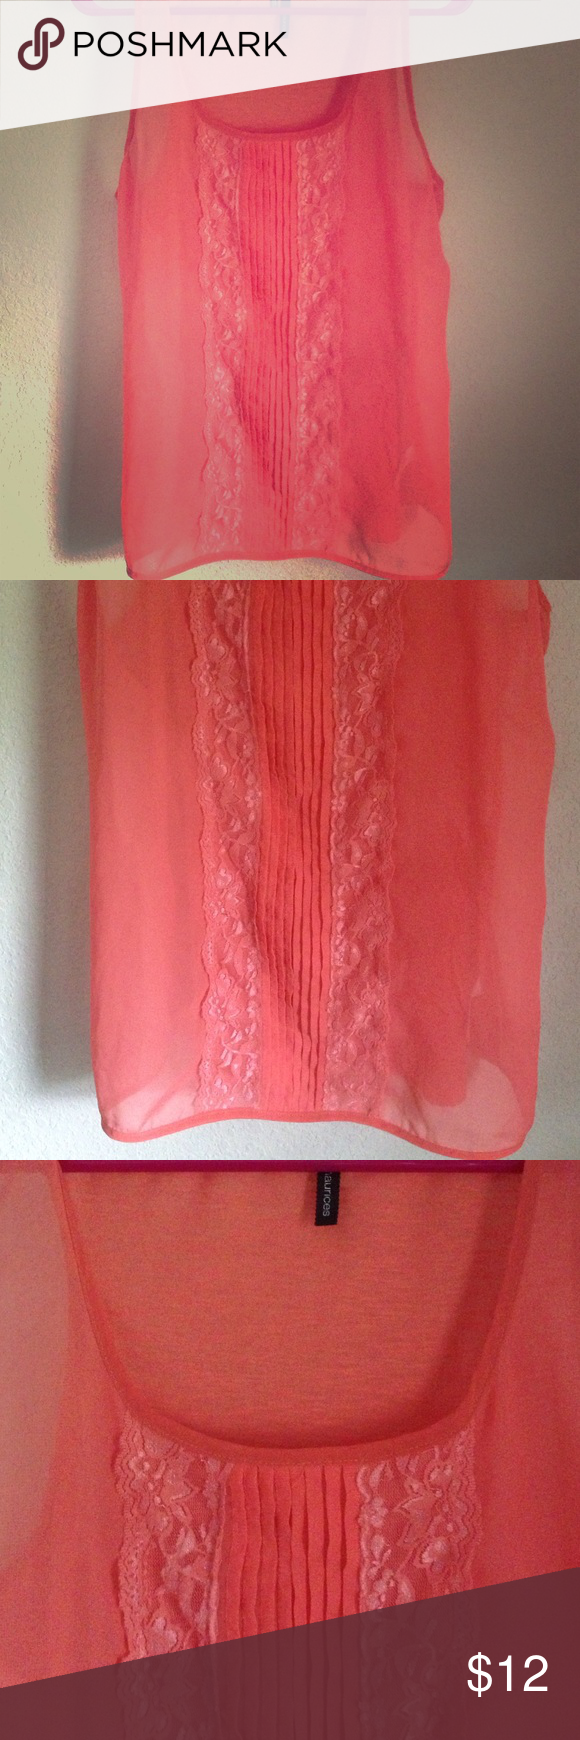 Maurice's sheer tank Coral colored sheer tank with lace design up the front Maurices Tops Tank Tops